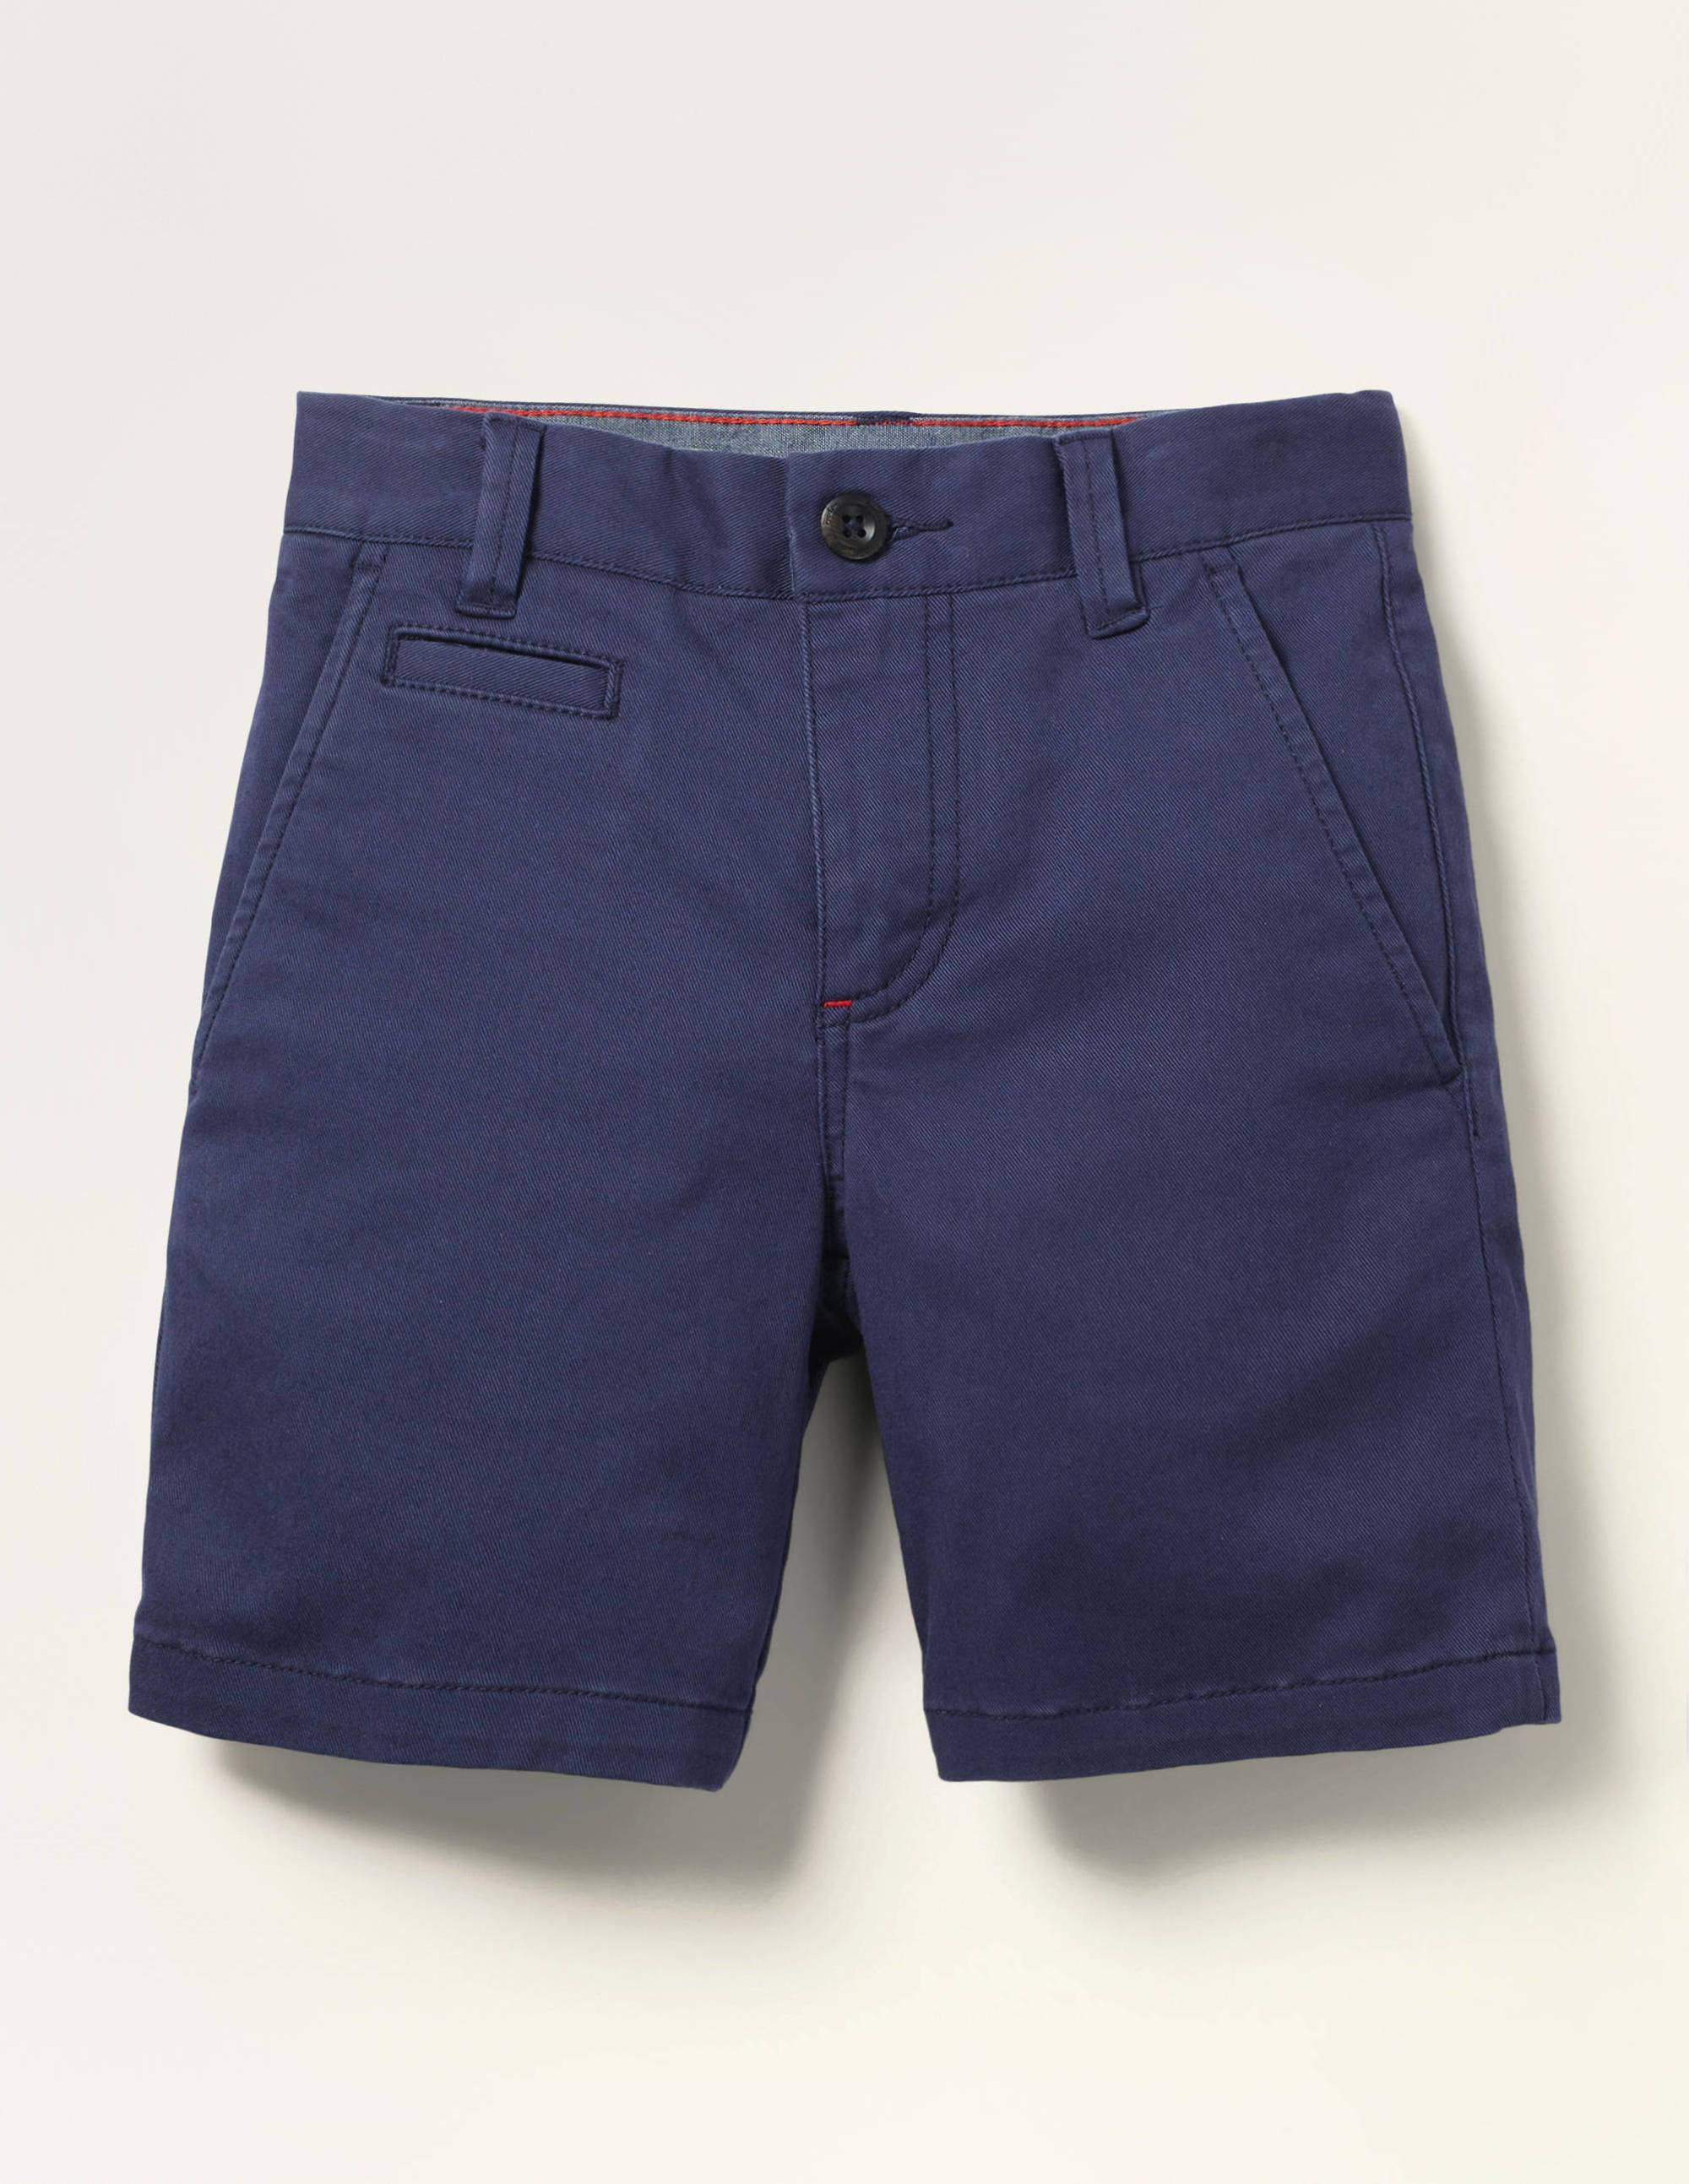 Mini Short chino NAV Femme Boden, Blue - 4a